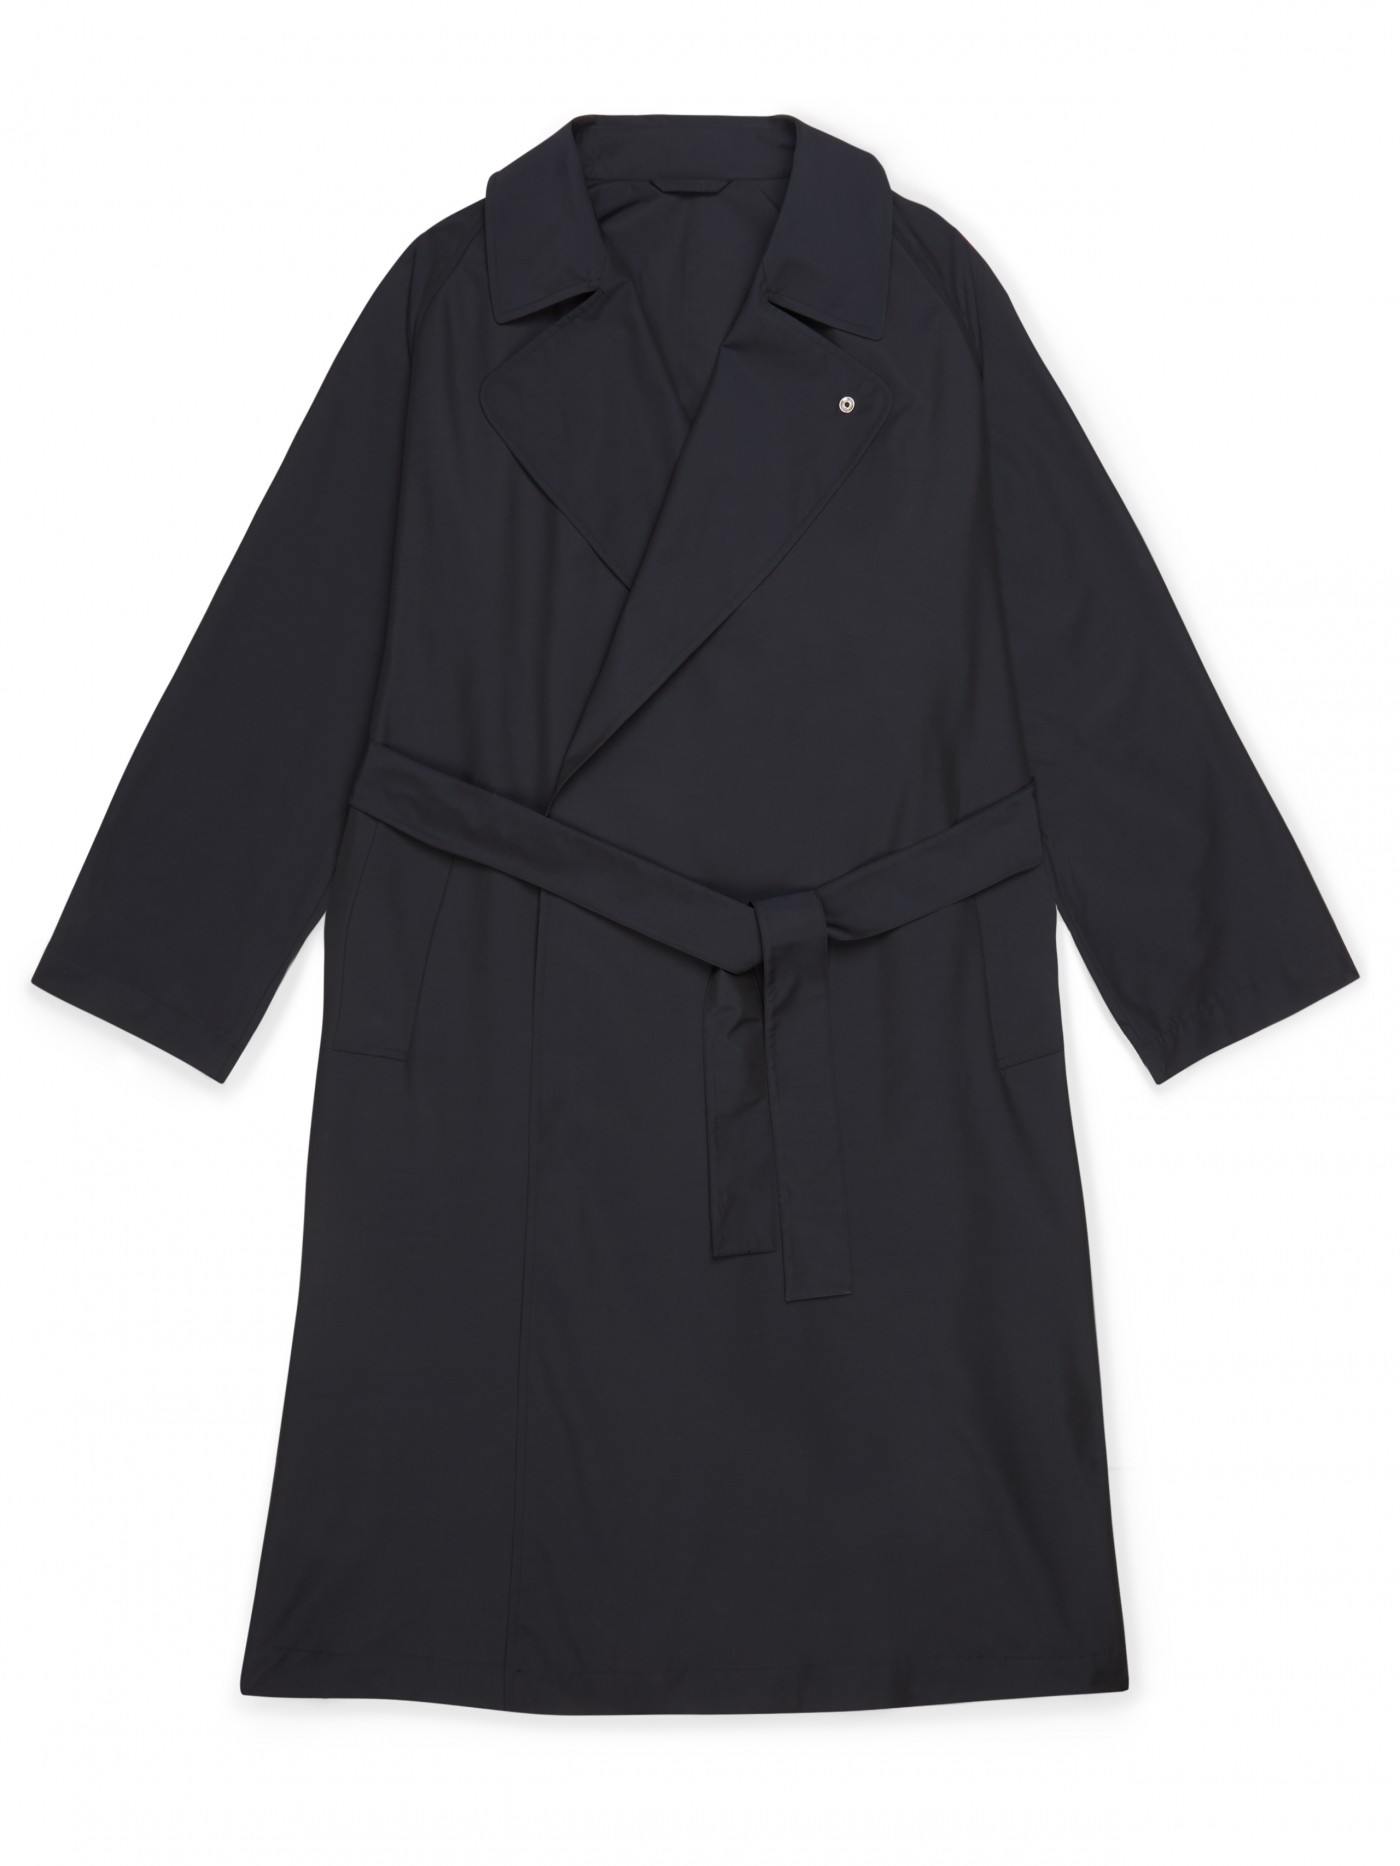 E. Tautz Navy Double Breasted Trench Coat